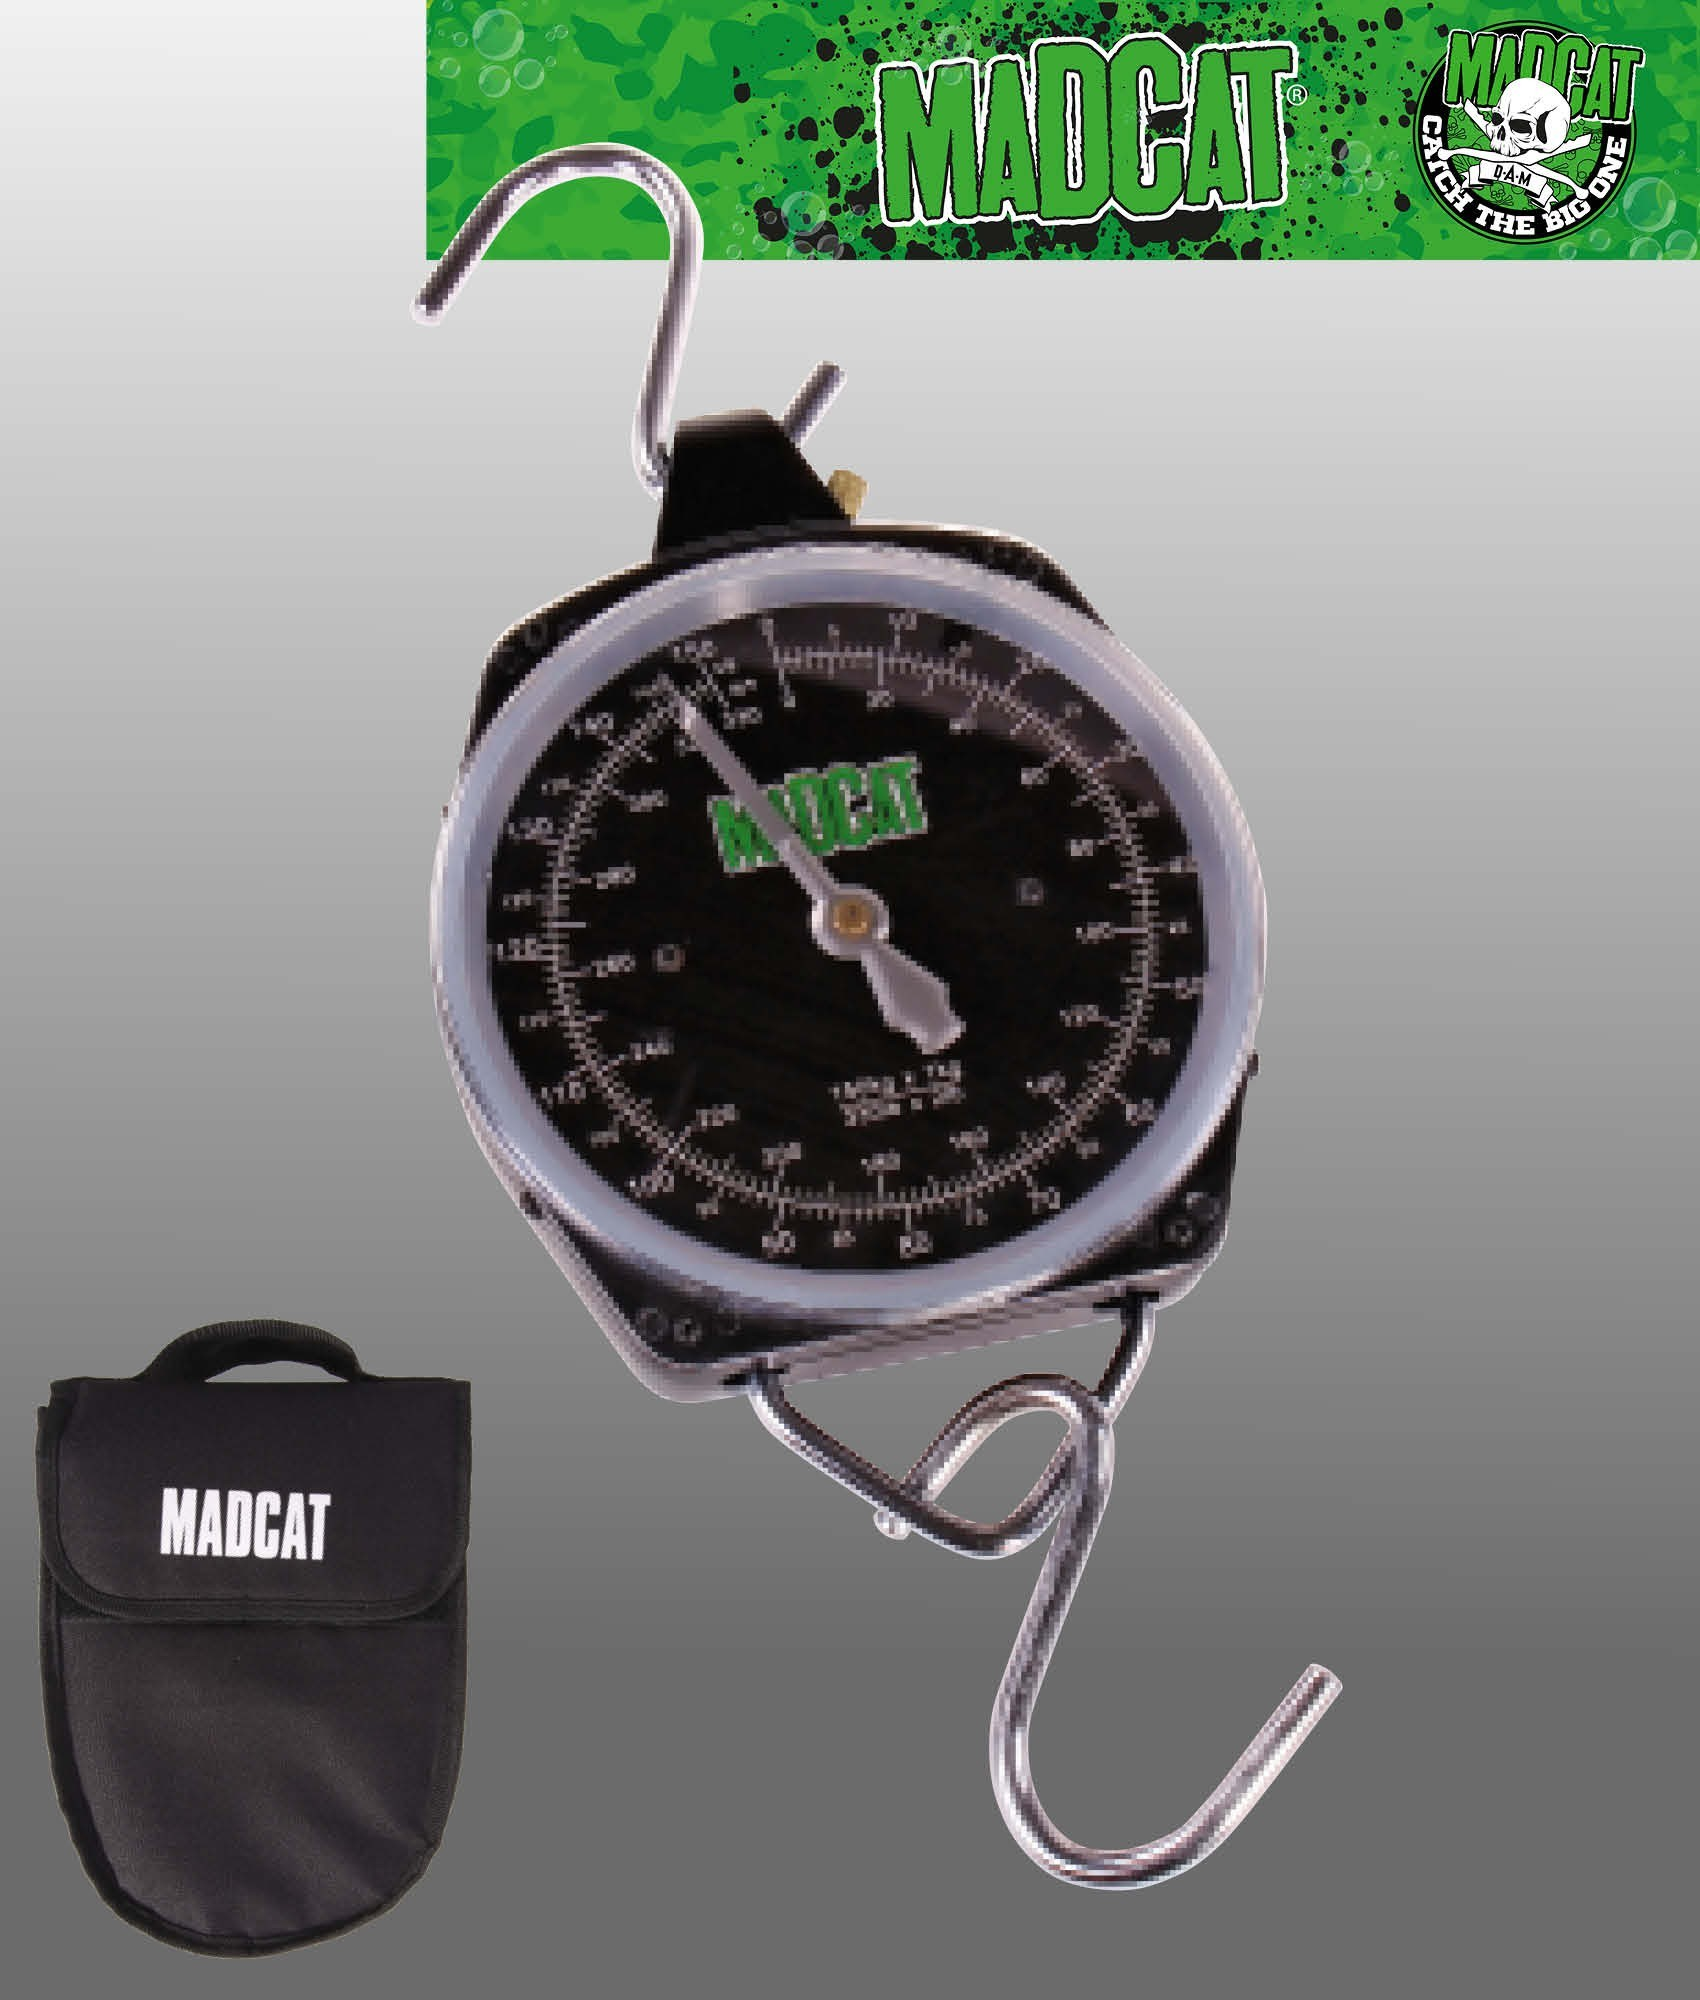 Tehtnica Madcat Weigh Clock 150kg